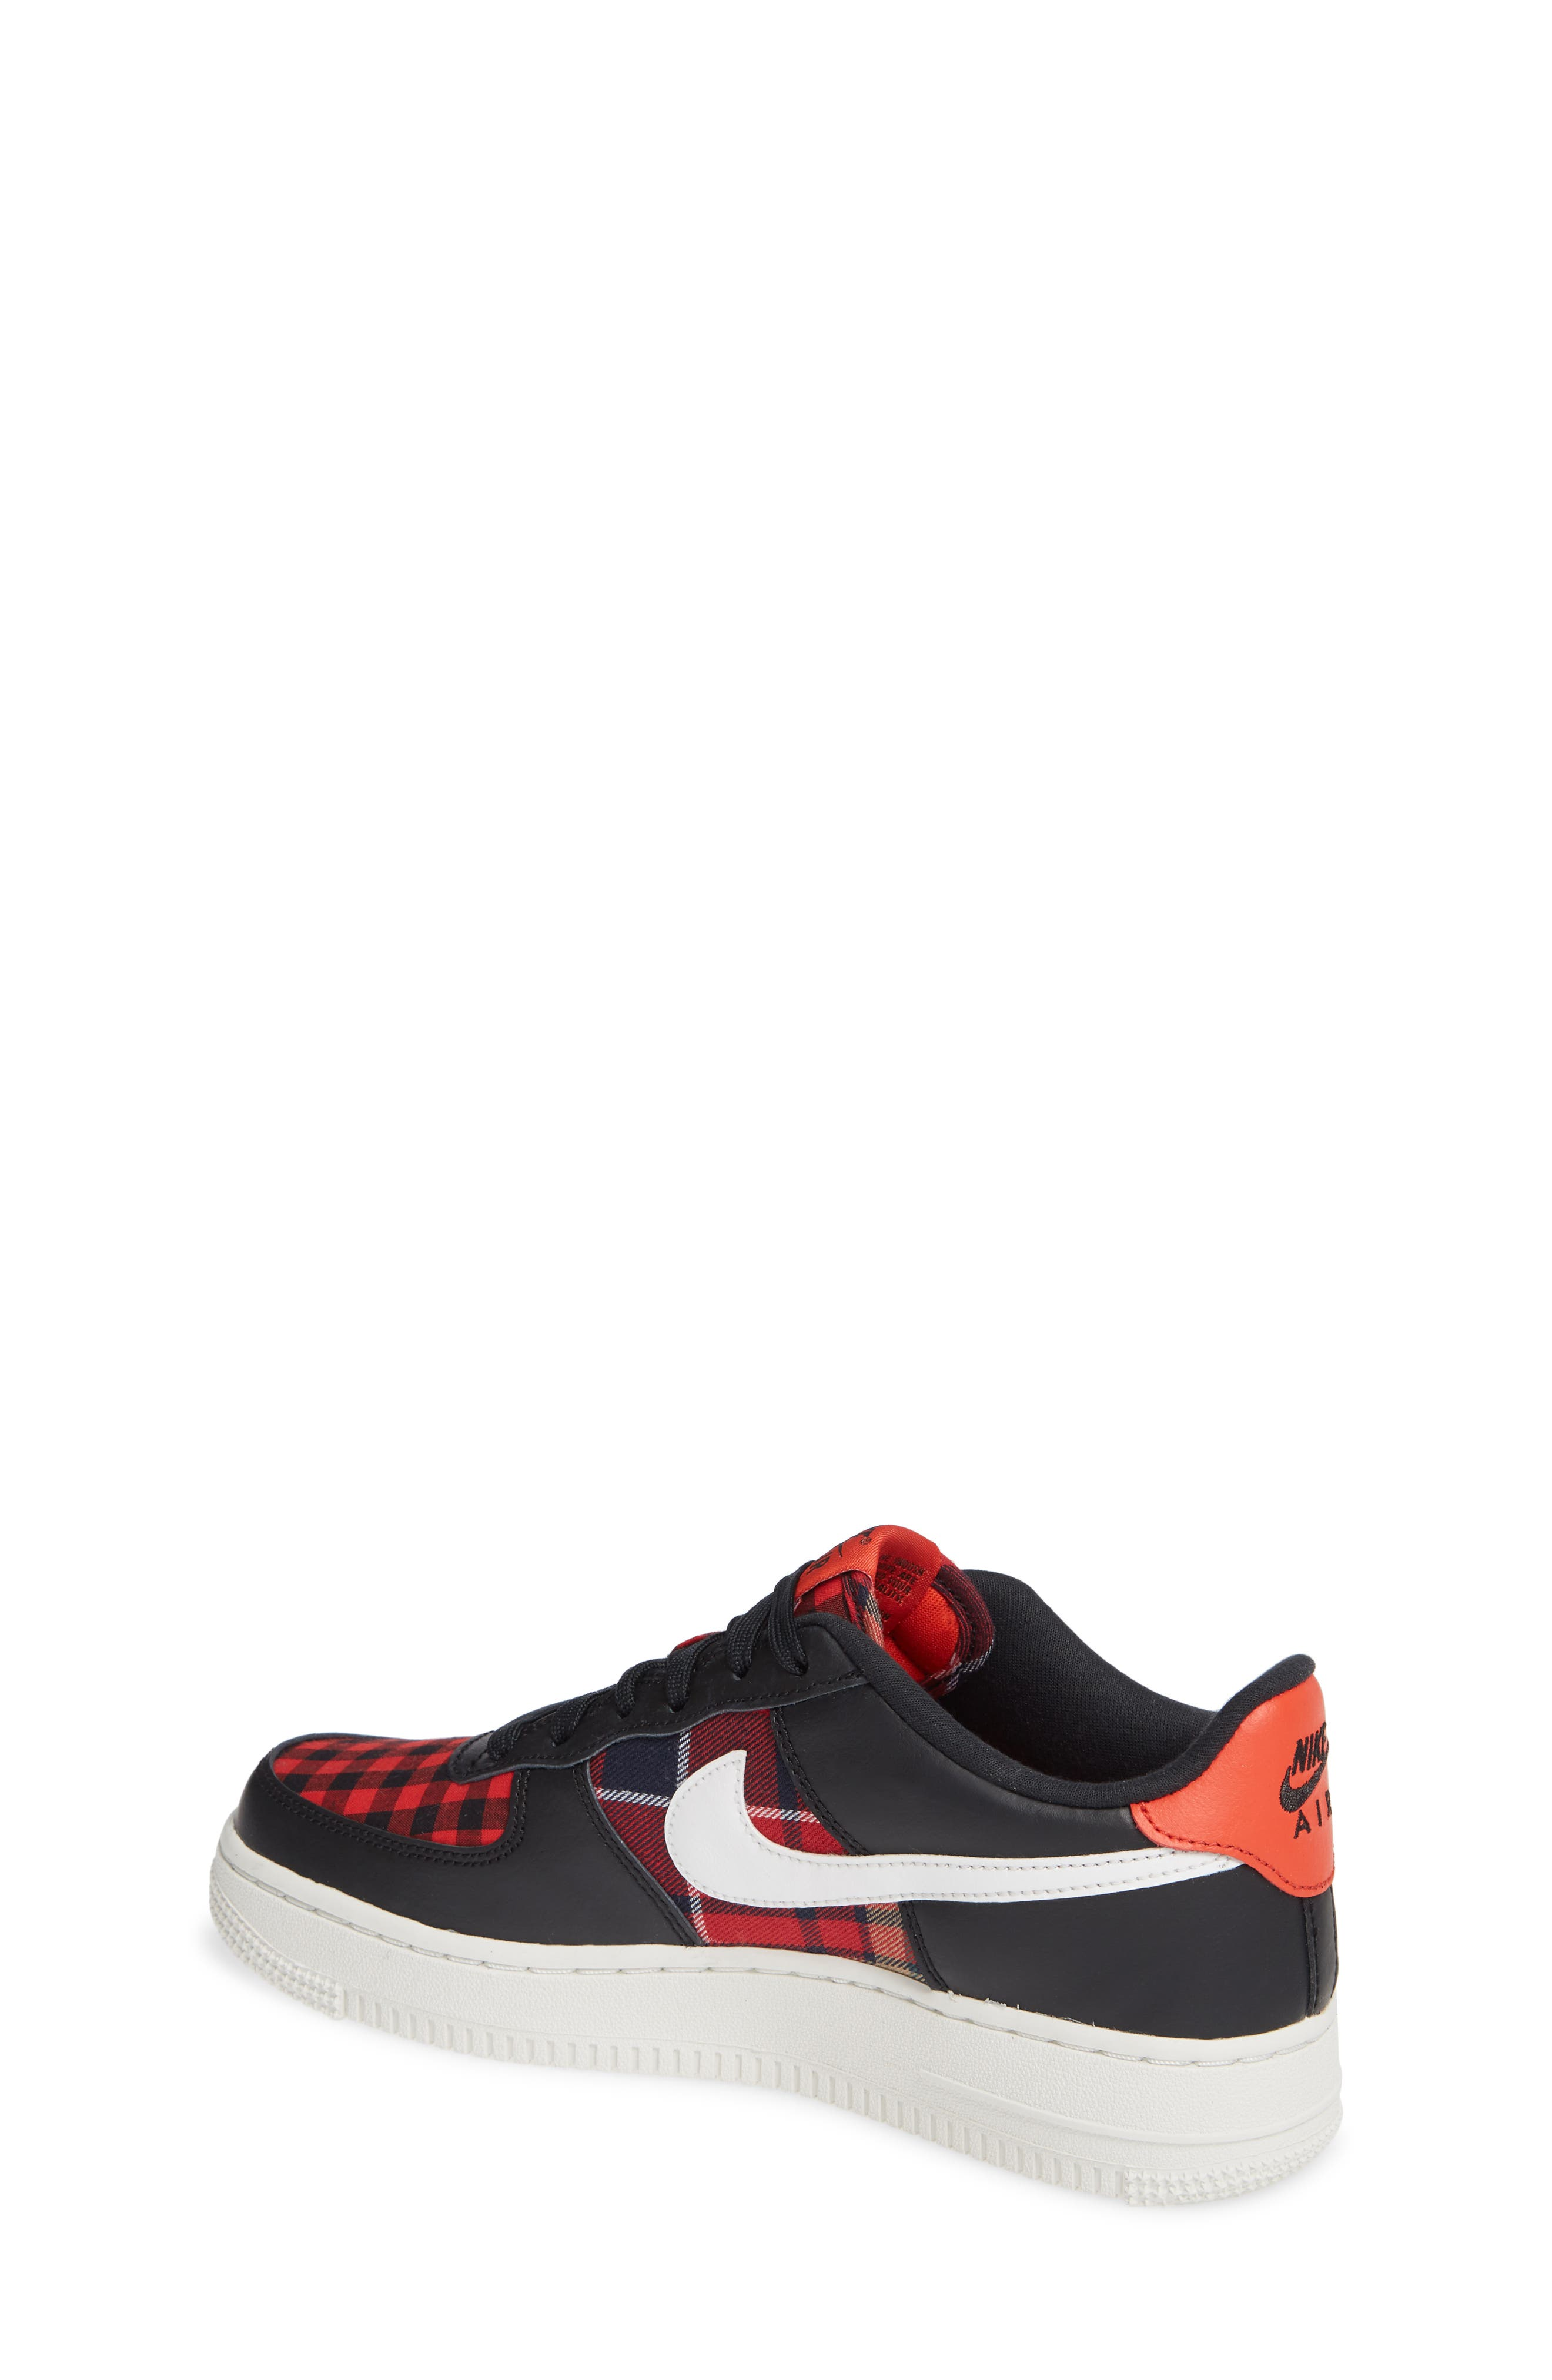 Air Force 1 LV8 Sneaker,                             Alternate thumbnail 2, color,                             BLACK/ SUMMIT RED